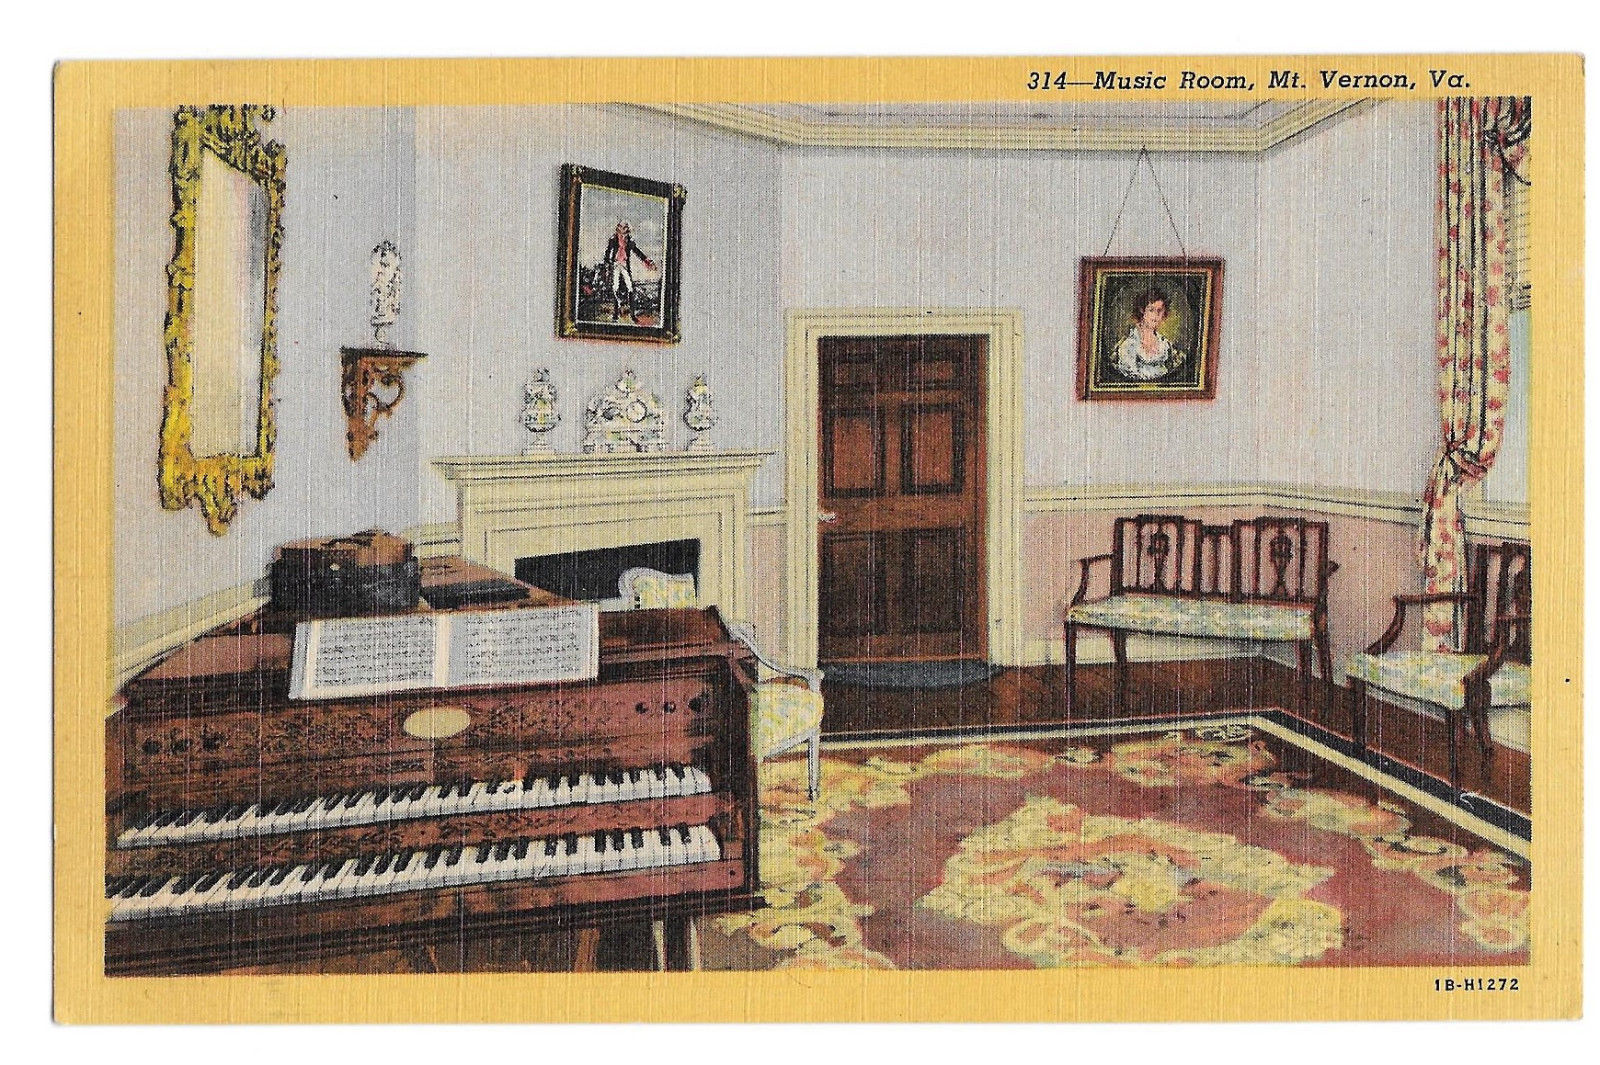 VA Mount Vernon Music Room Vtg B S Reynolds Linen Postcard Alexandria Virginia